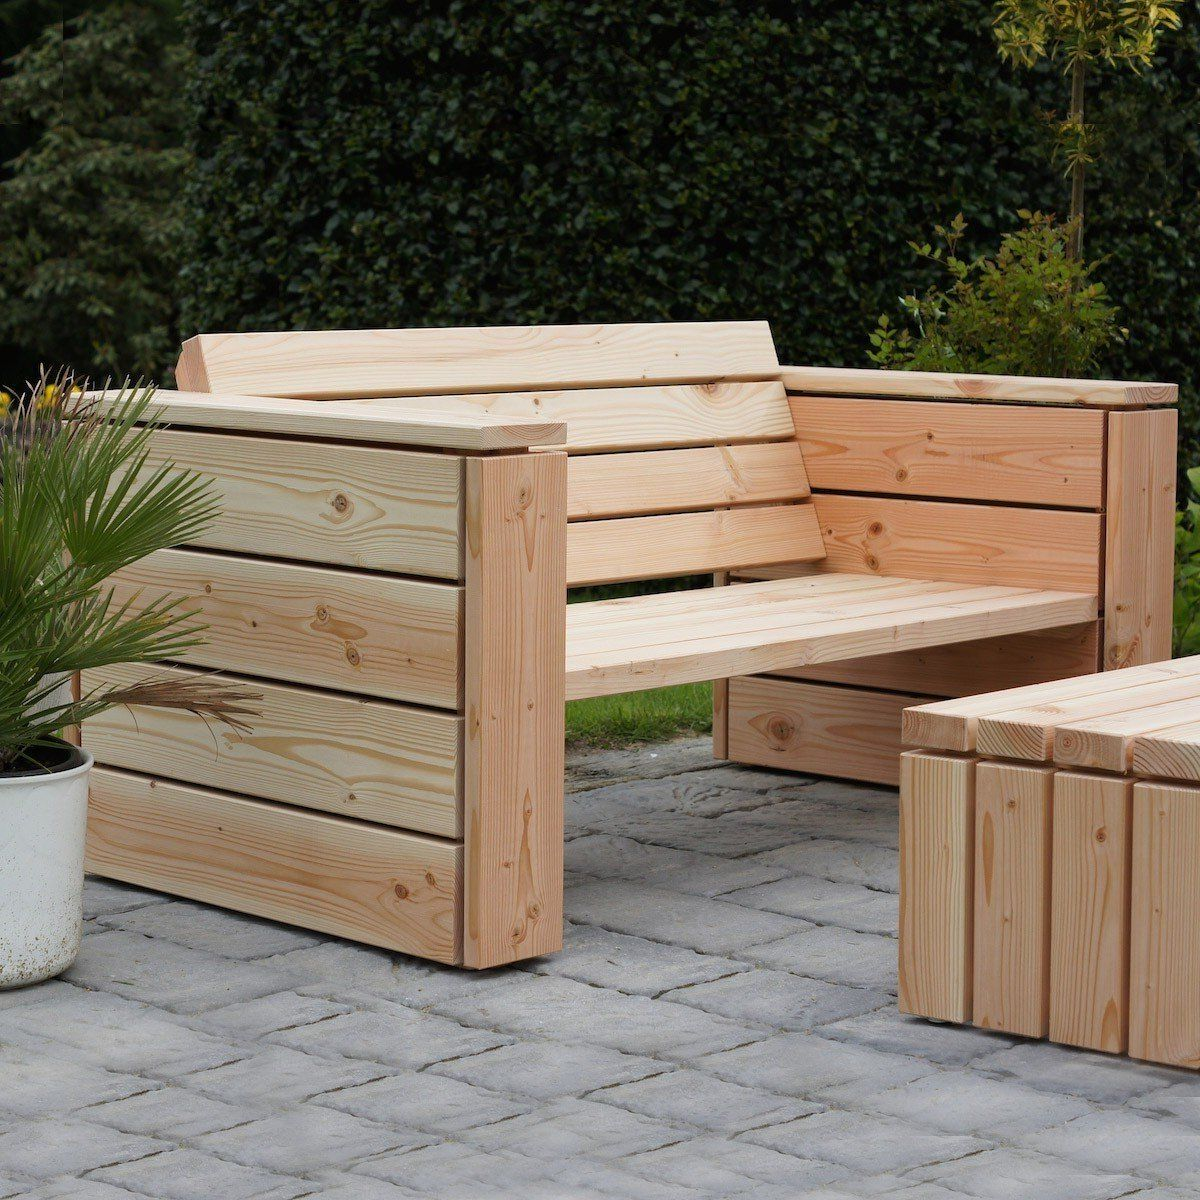 Diy Balkonmöbel Gartenmöbel Home Improvement Furniture Diy Outdoor